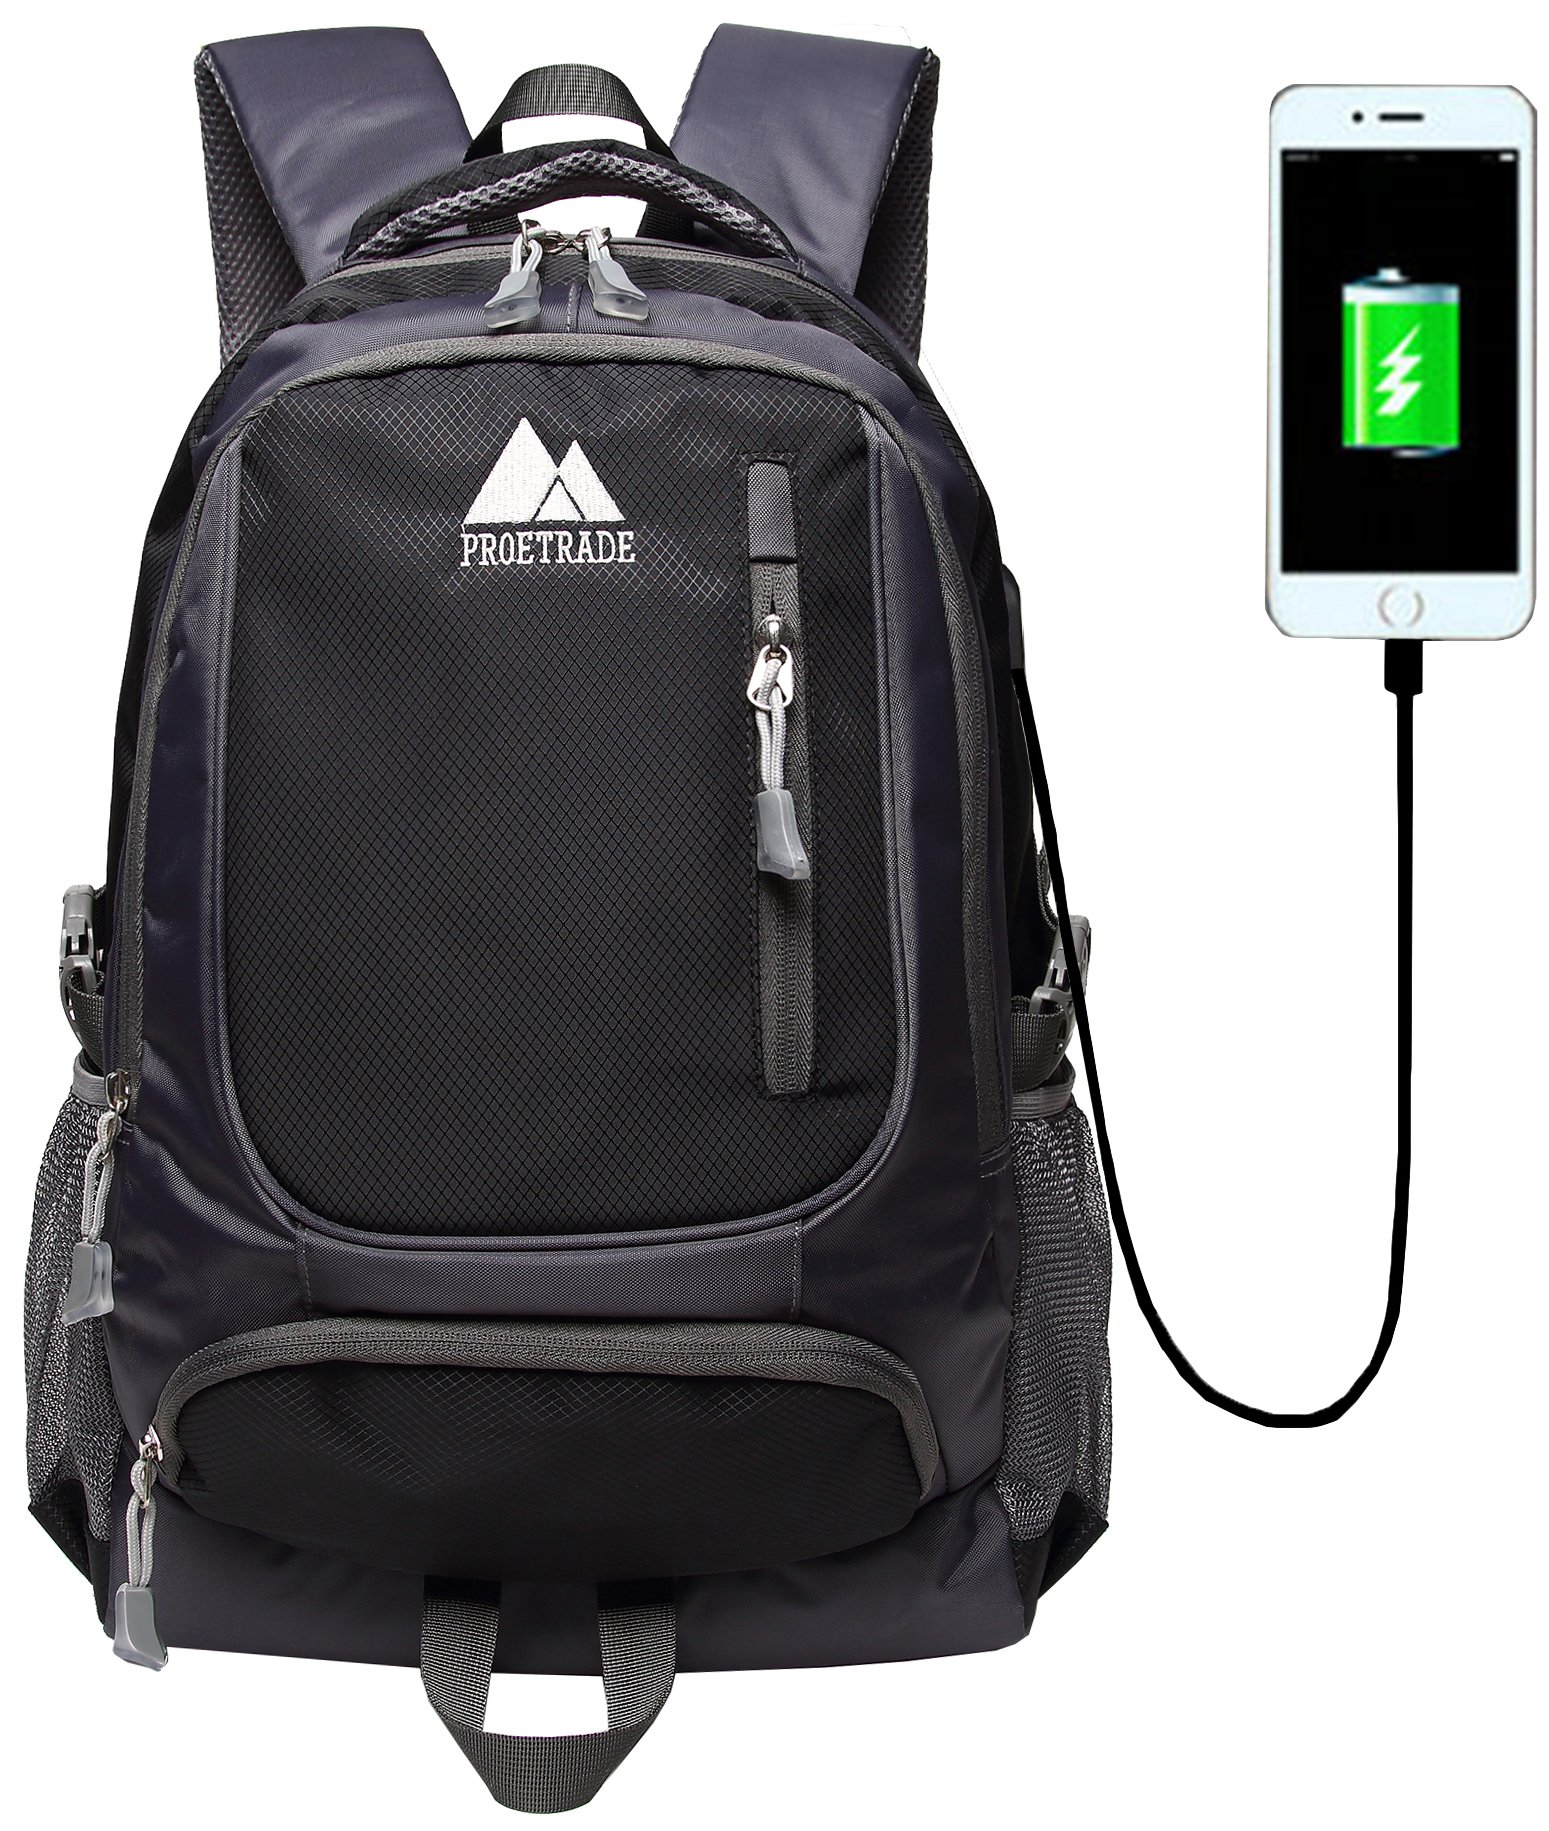 School Backpack Bookbag With USB Charging Port For College Travel Hiking Fit Laptop Up to 15.6 Inch Water Resistant (Black)